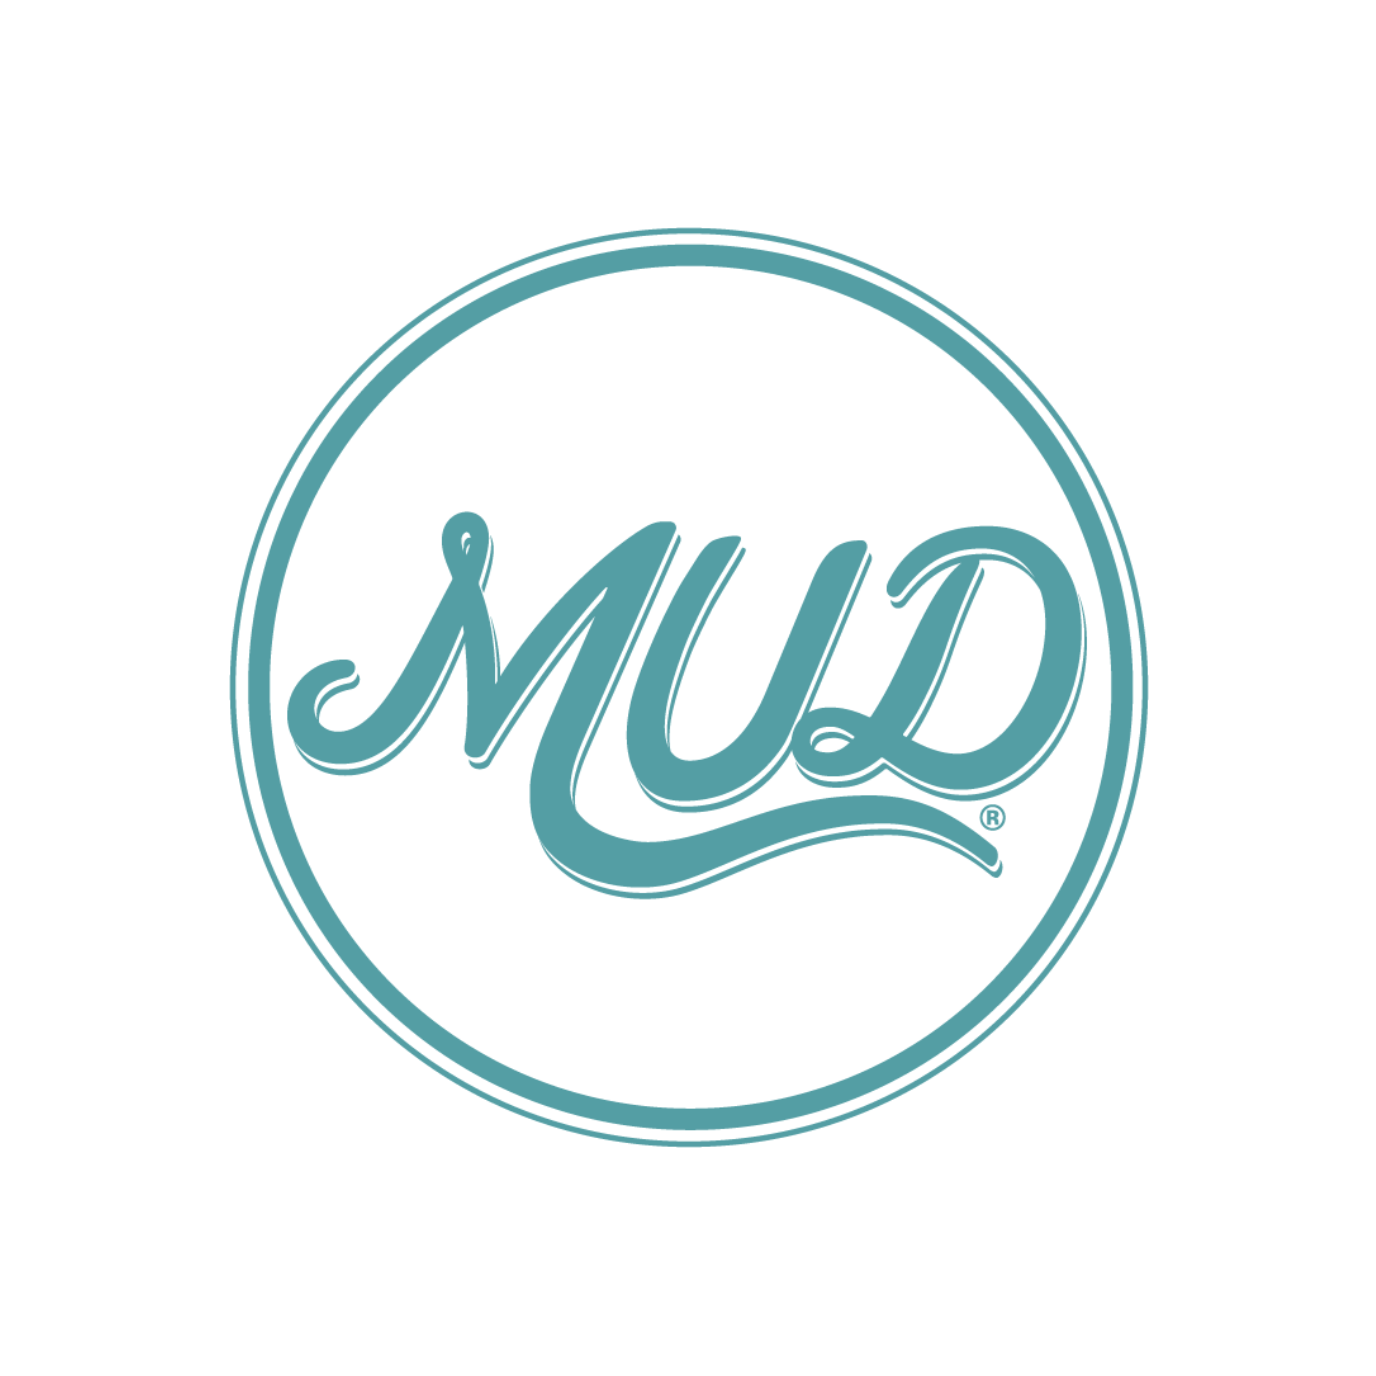 Eat MUD logo - Certified Paleo by the Paleo Foundation